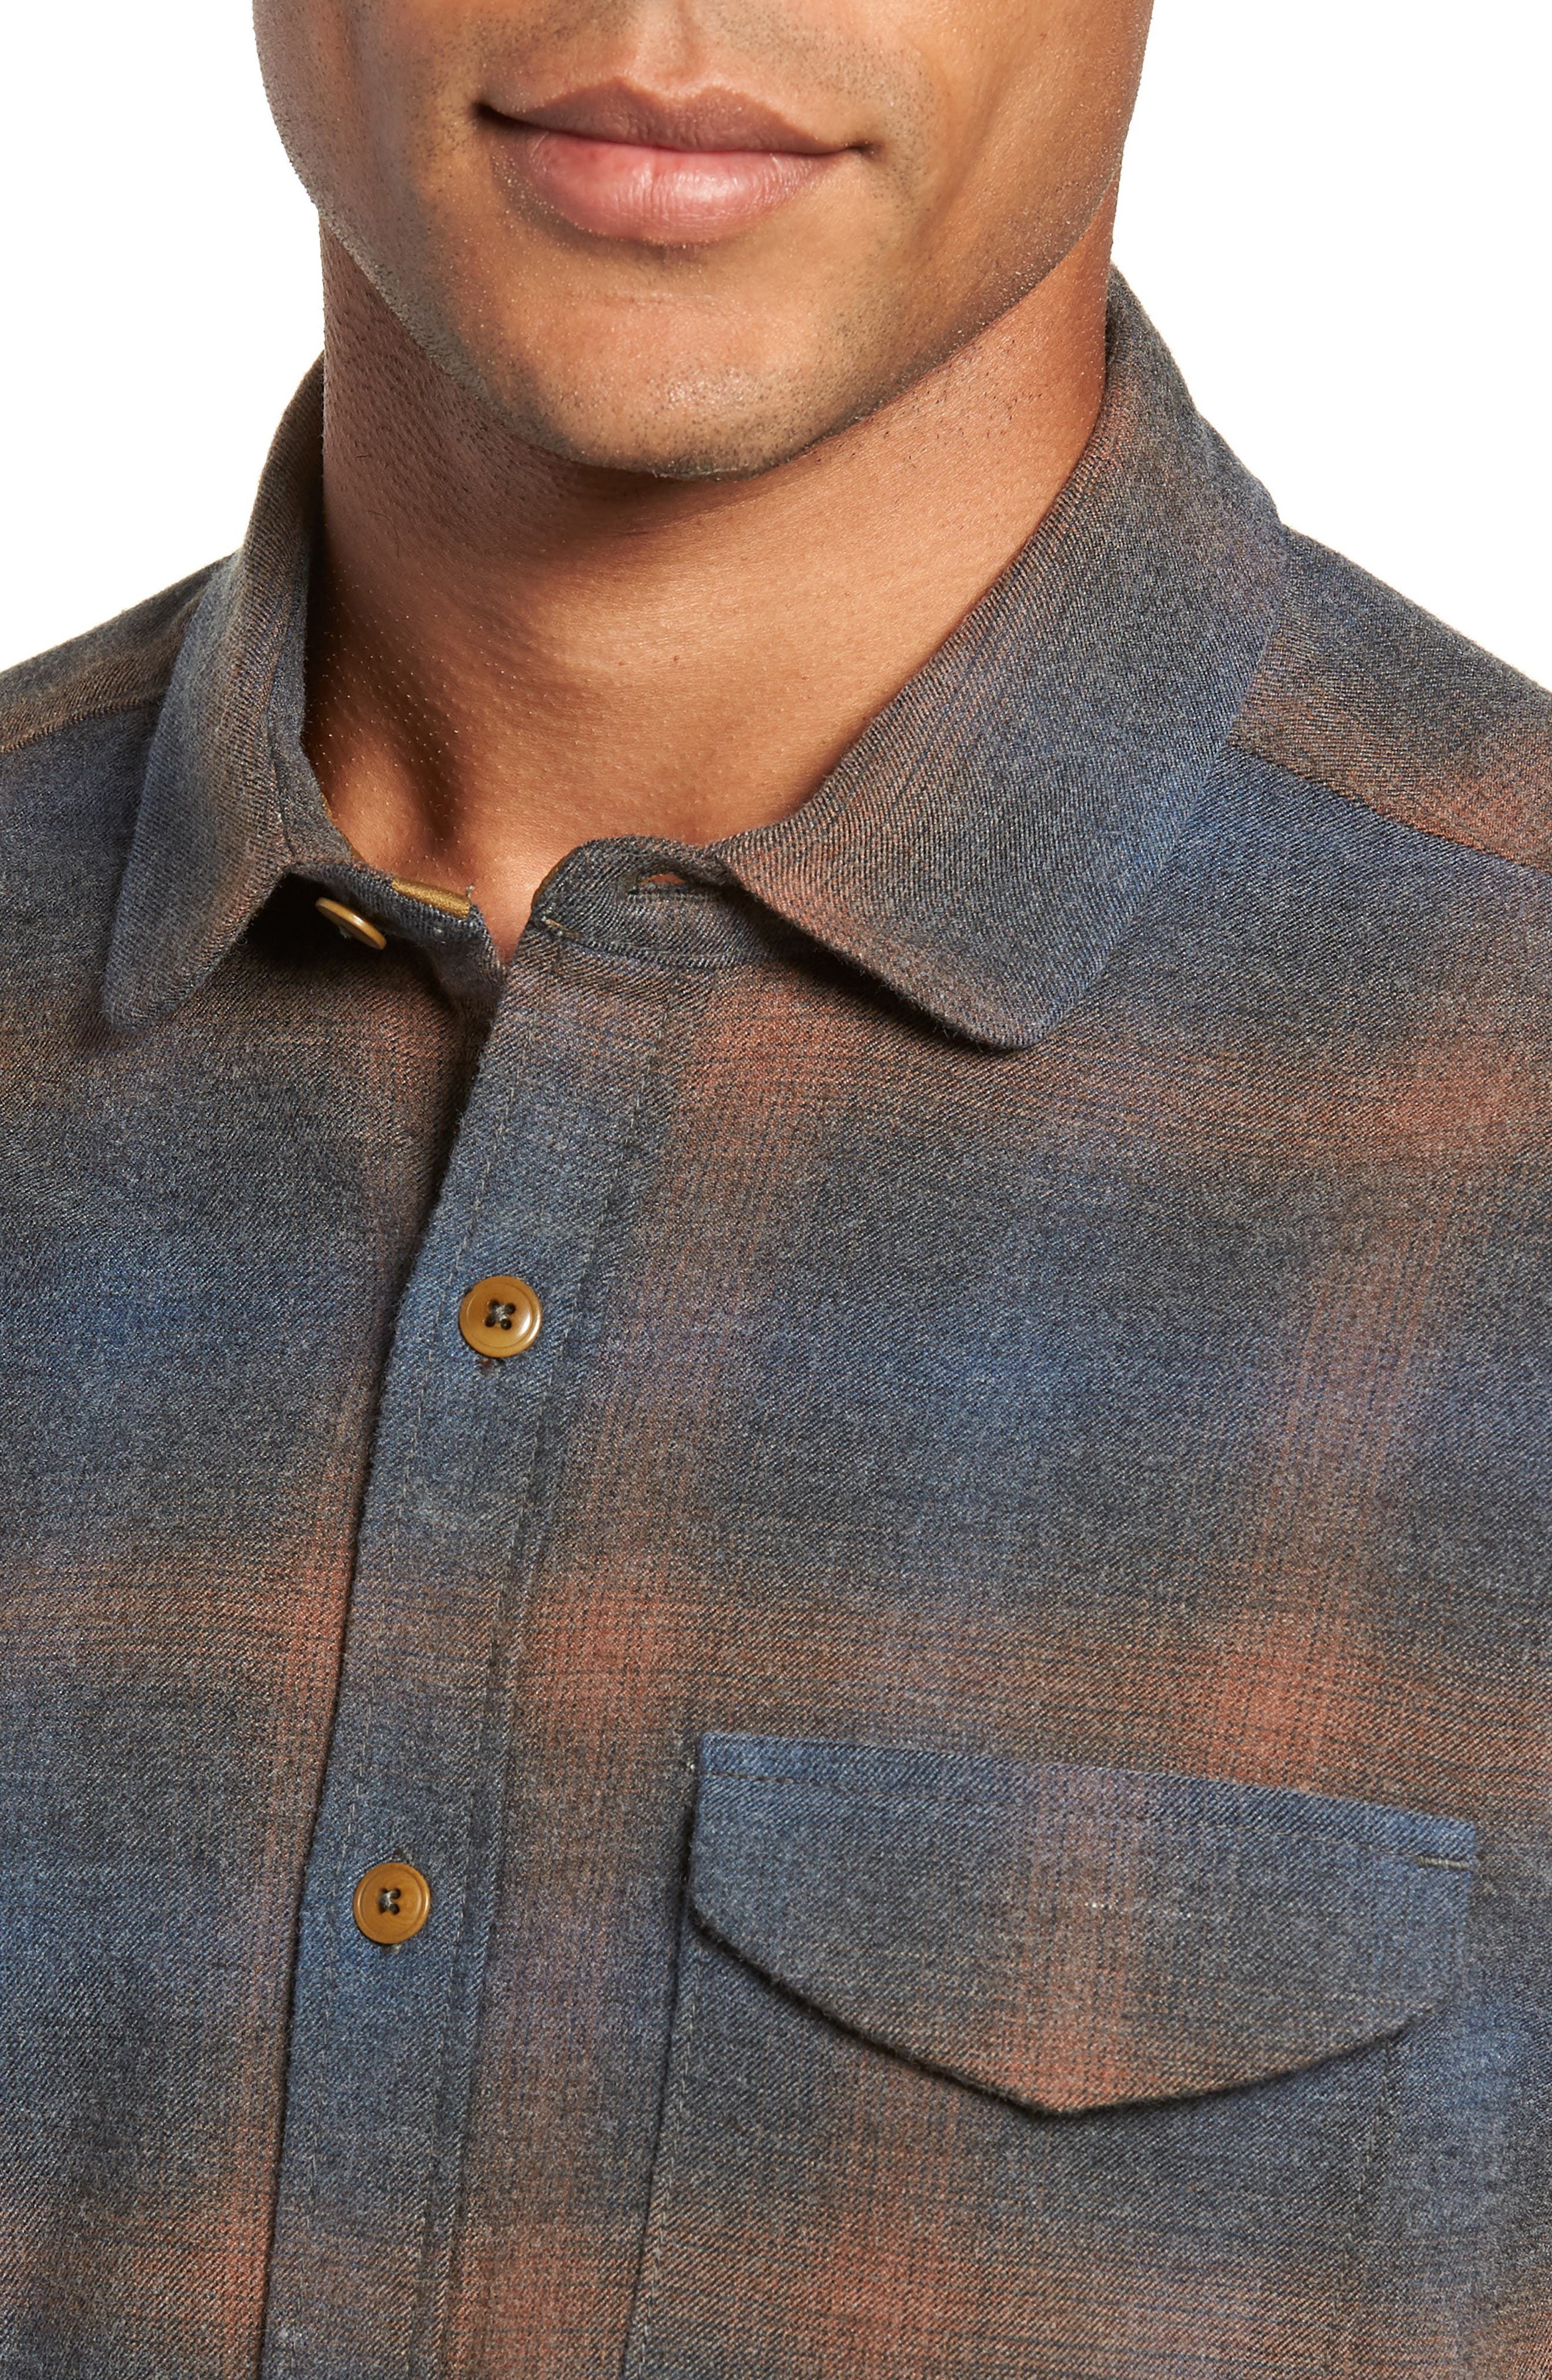 Washburn Regular Fit Plaid Stretch Brushed Flannel Shirt,                             Alternate thumbnail 2, color,                             BLUE WING TEAL HEATHER